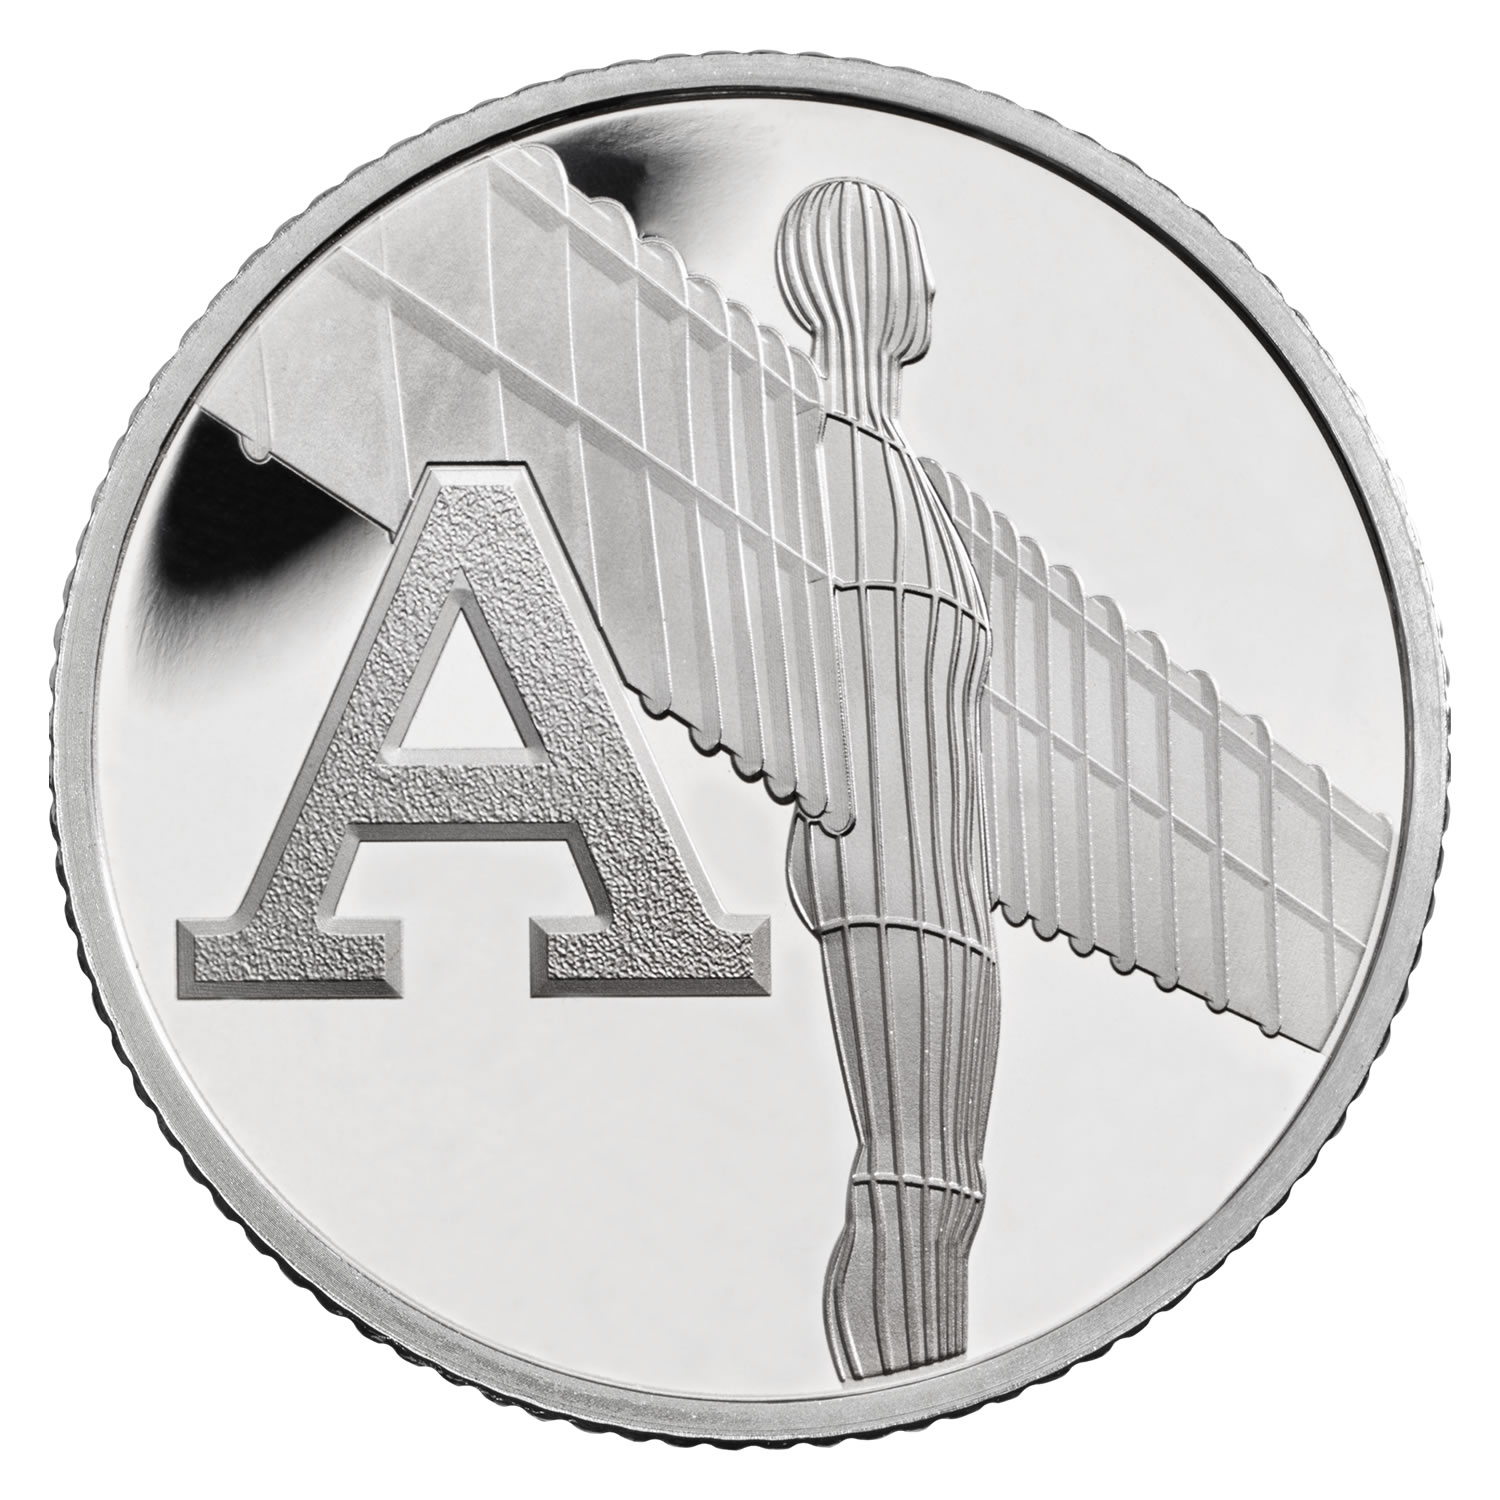 A - Angel of the North 2018 UK 10p Silver Proof Coin